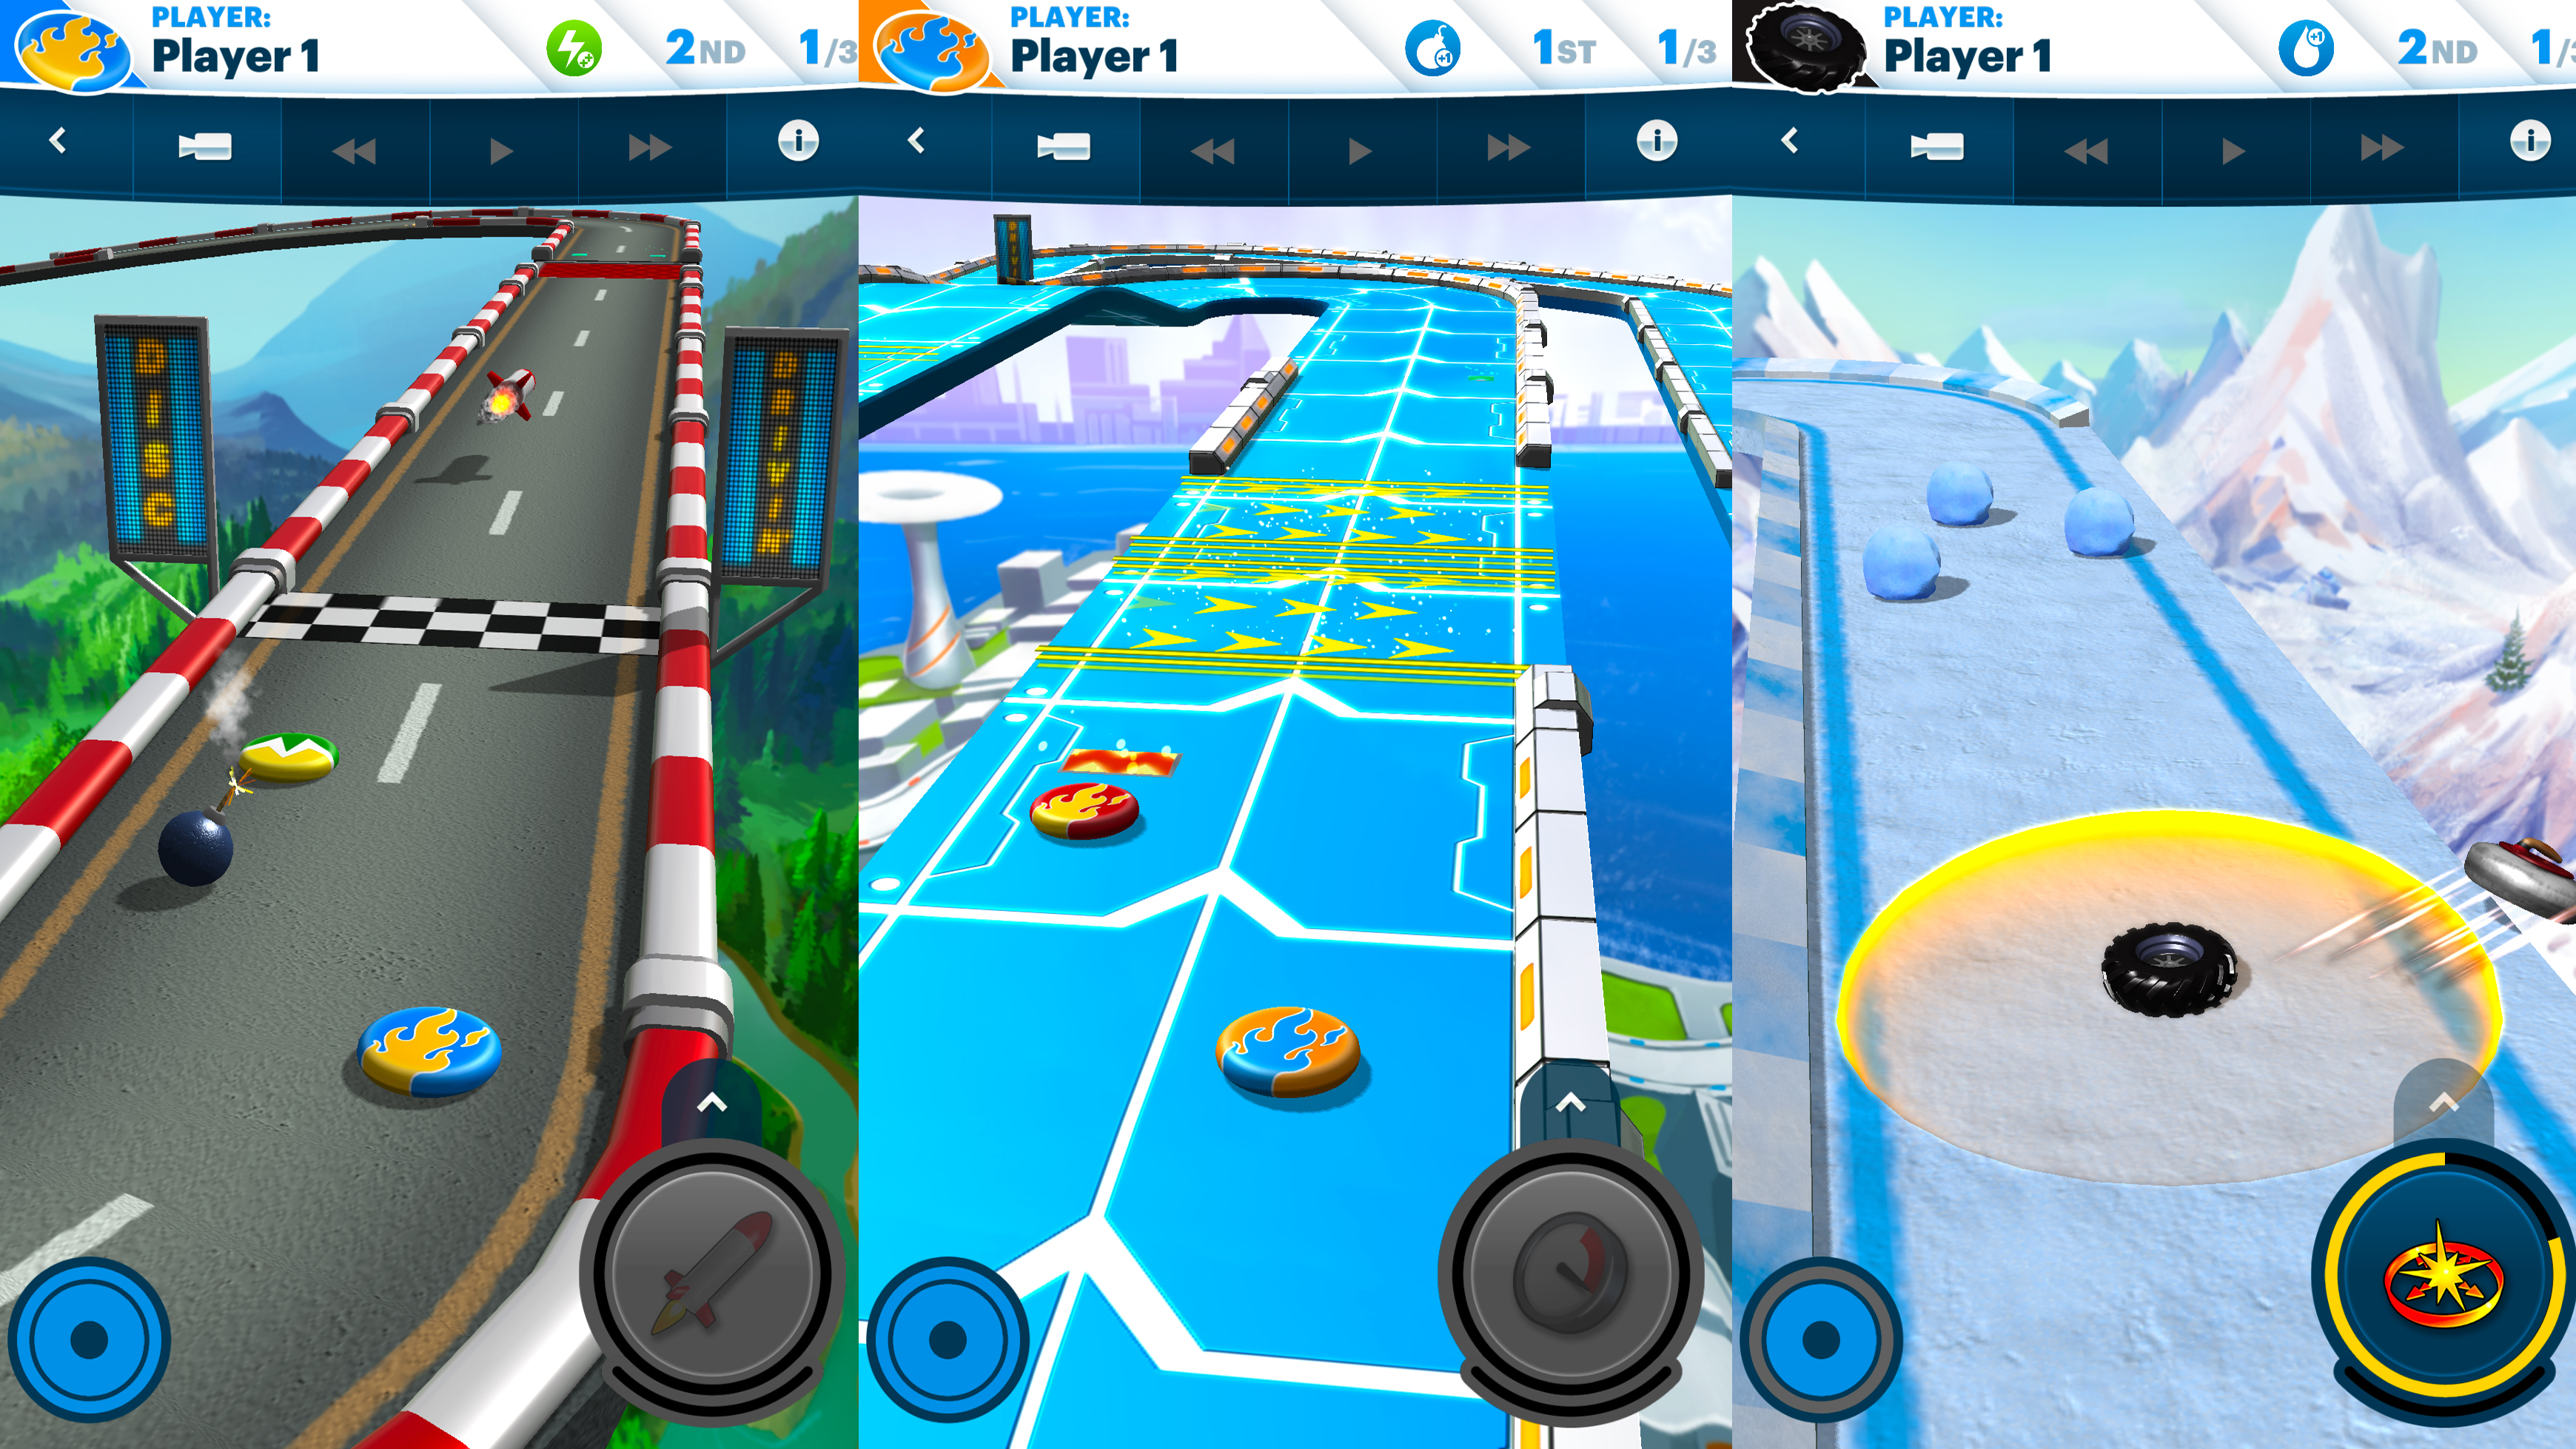 GV9y9zW25Y8rSRQ9kb2XaN - The best free Android games 2019